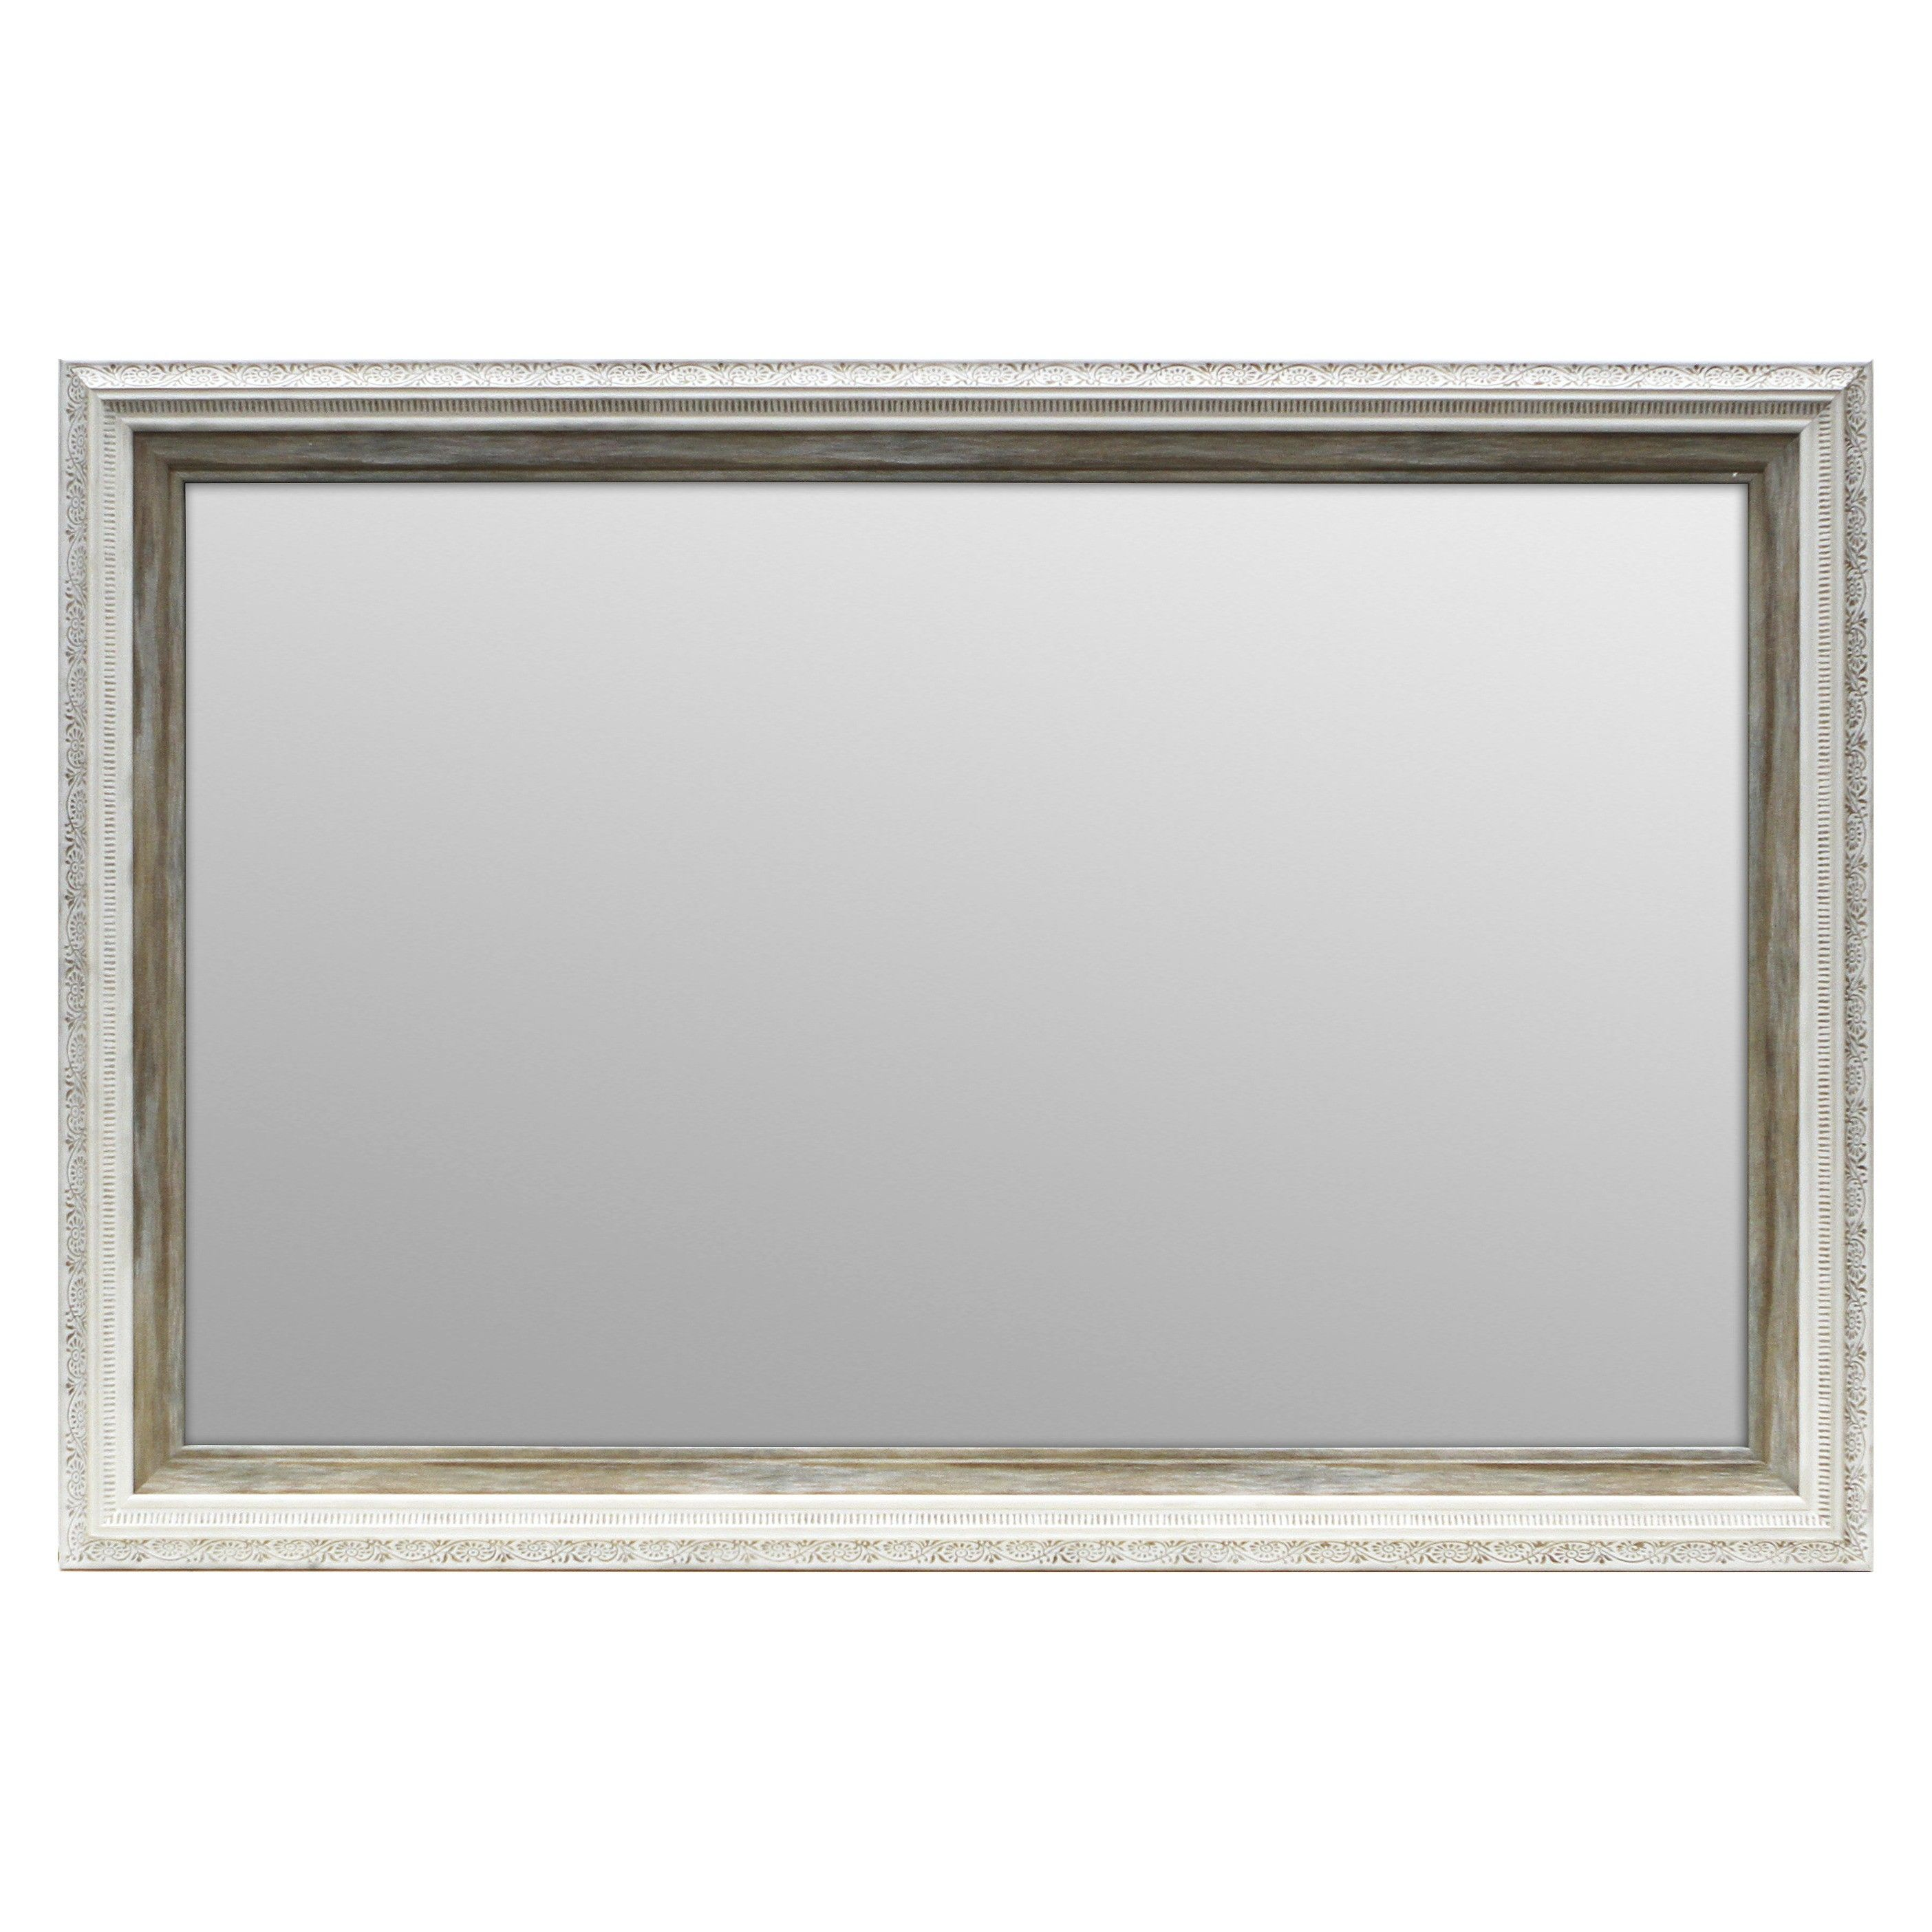 Threshold™ Antique Mirror - Gray 24x36 : Target | Mirrors ...